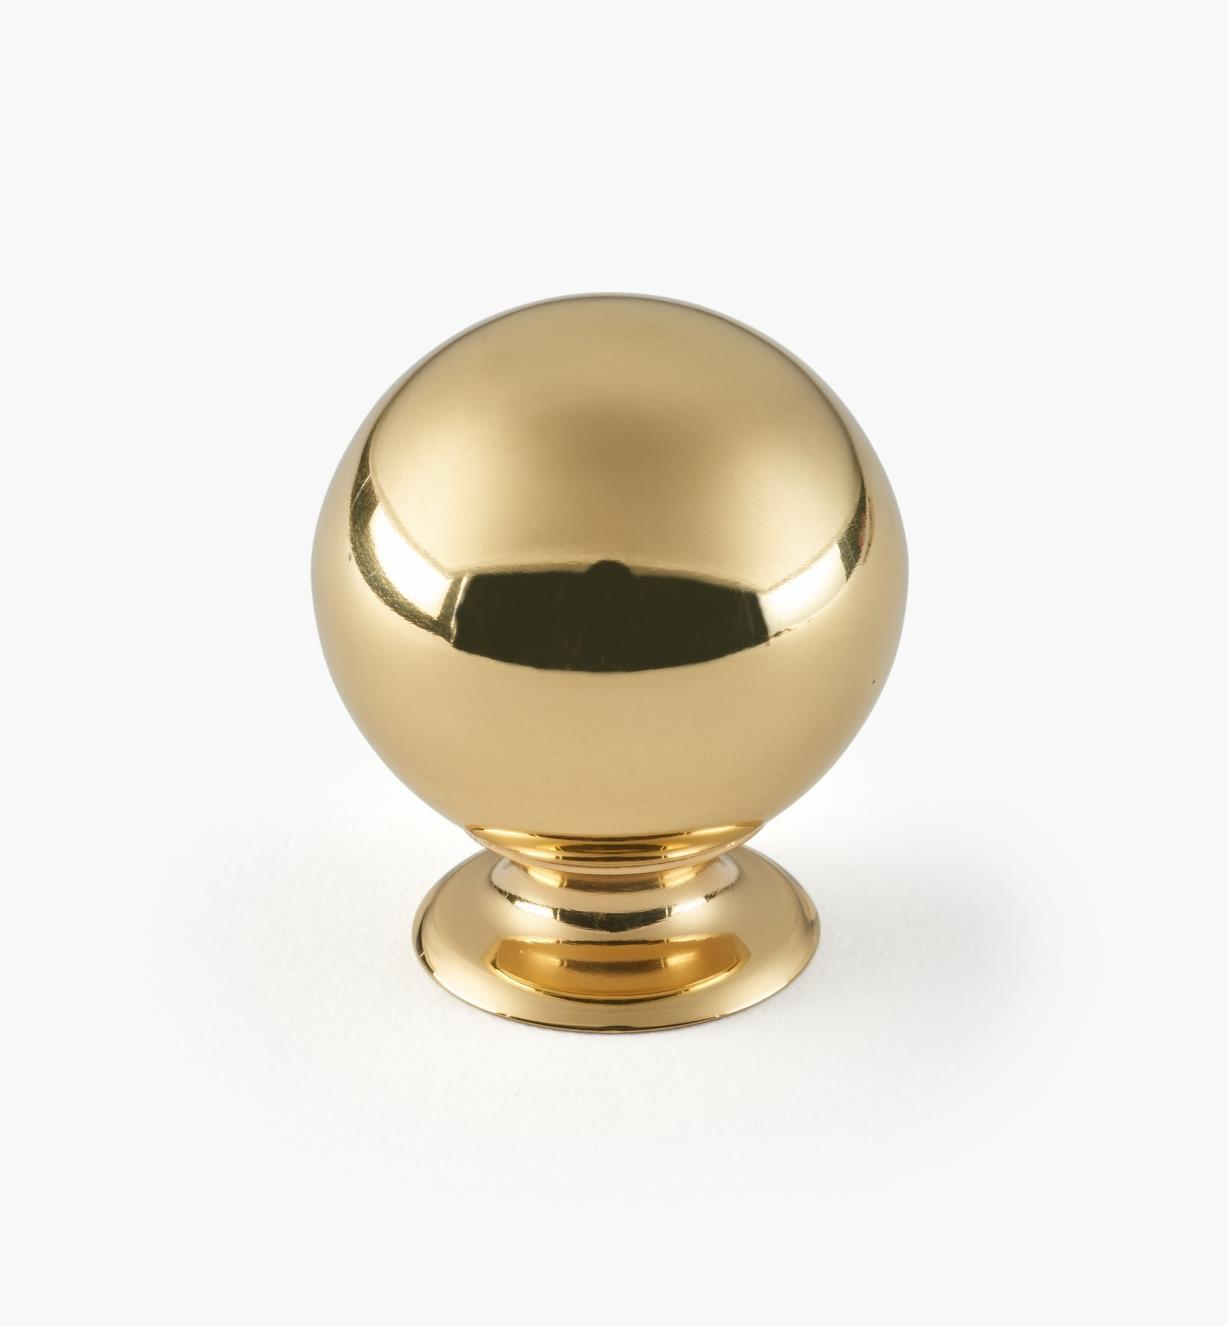 "01W1903 - 1 3/8"" x 1 5/8"" Polished Brass Ball Knob"